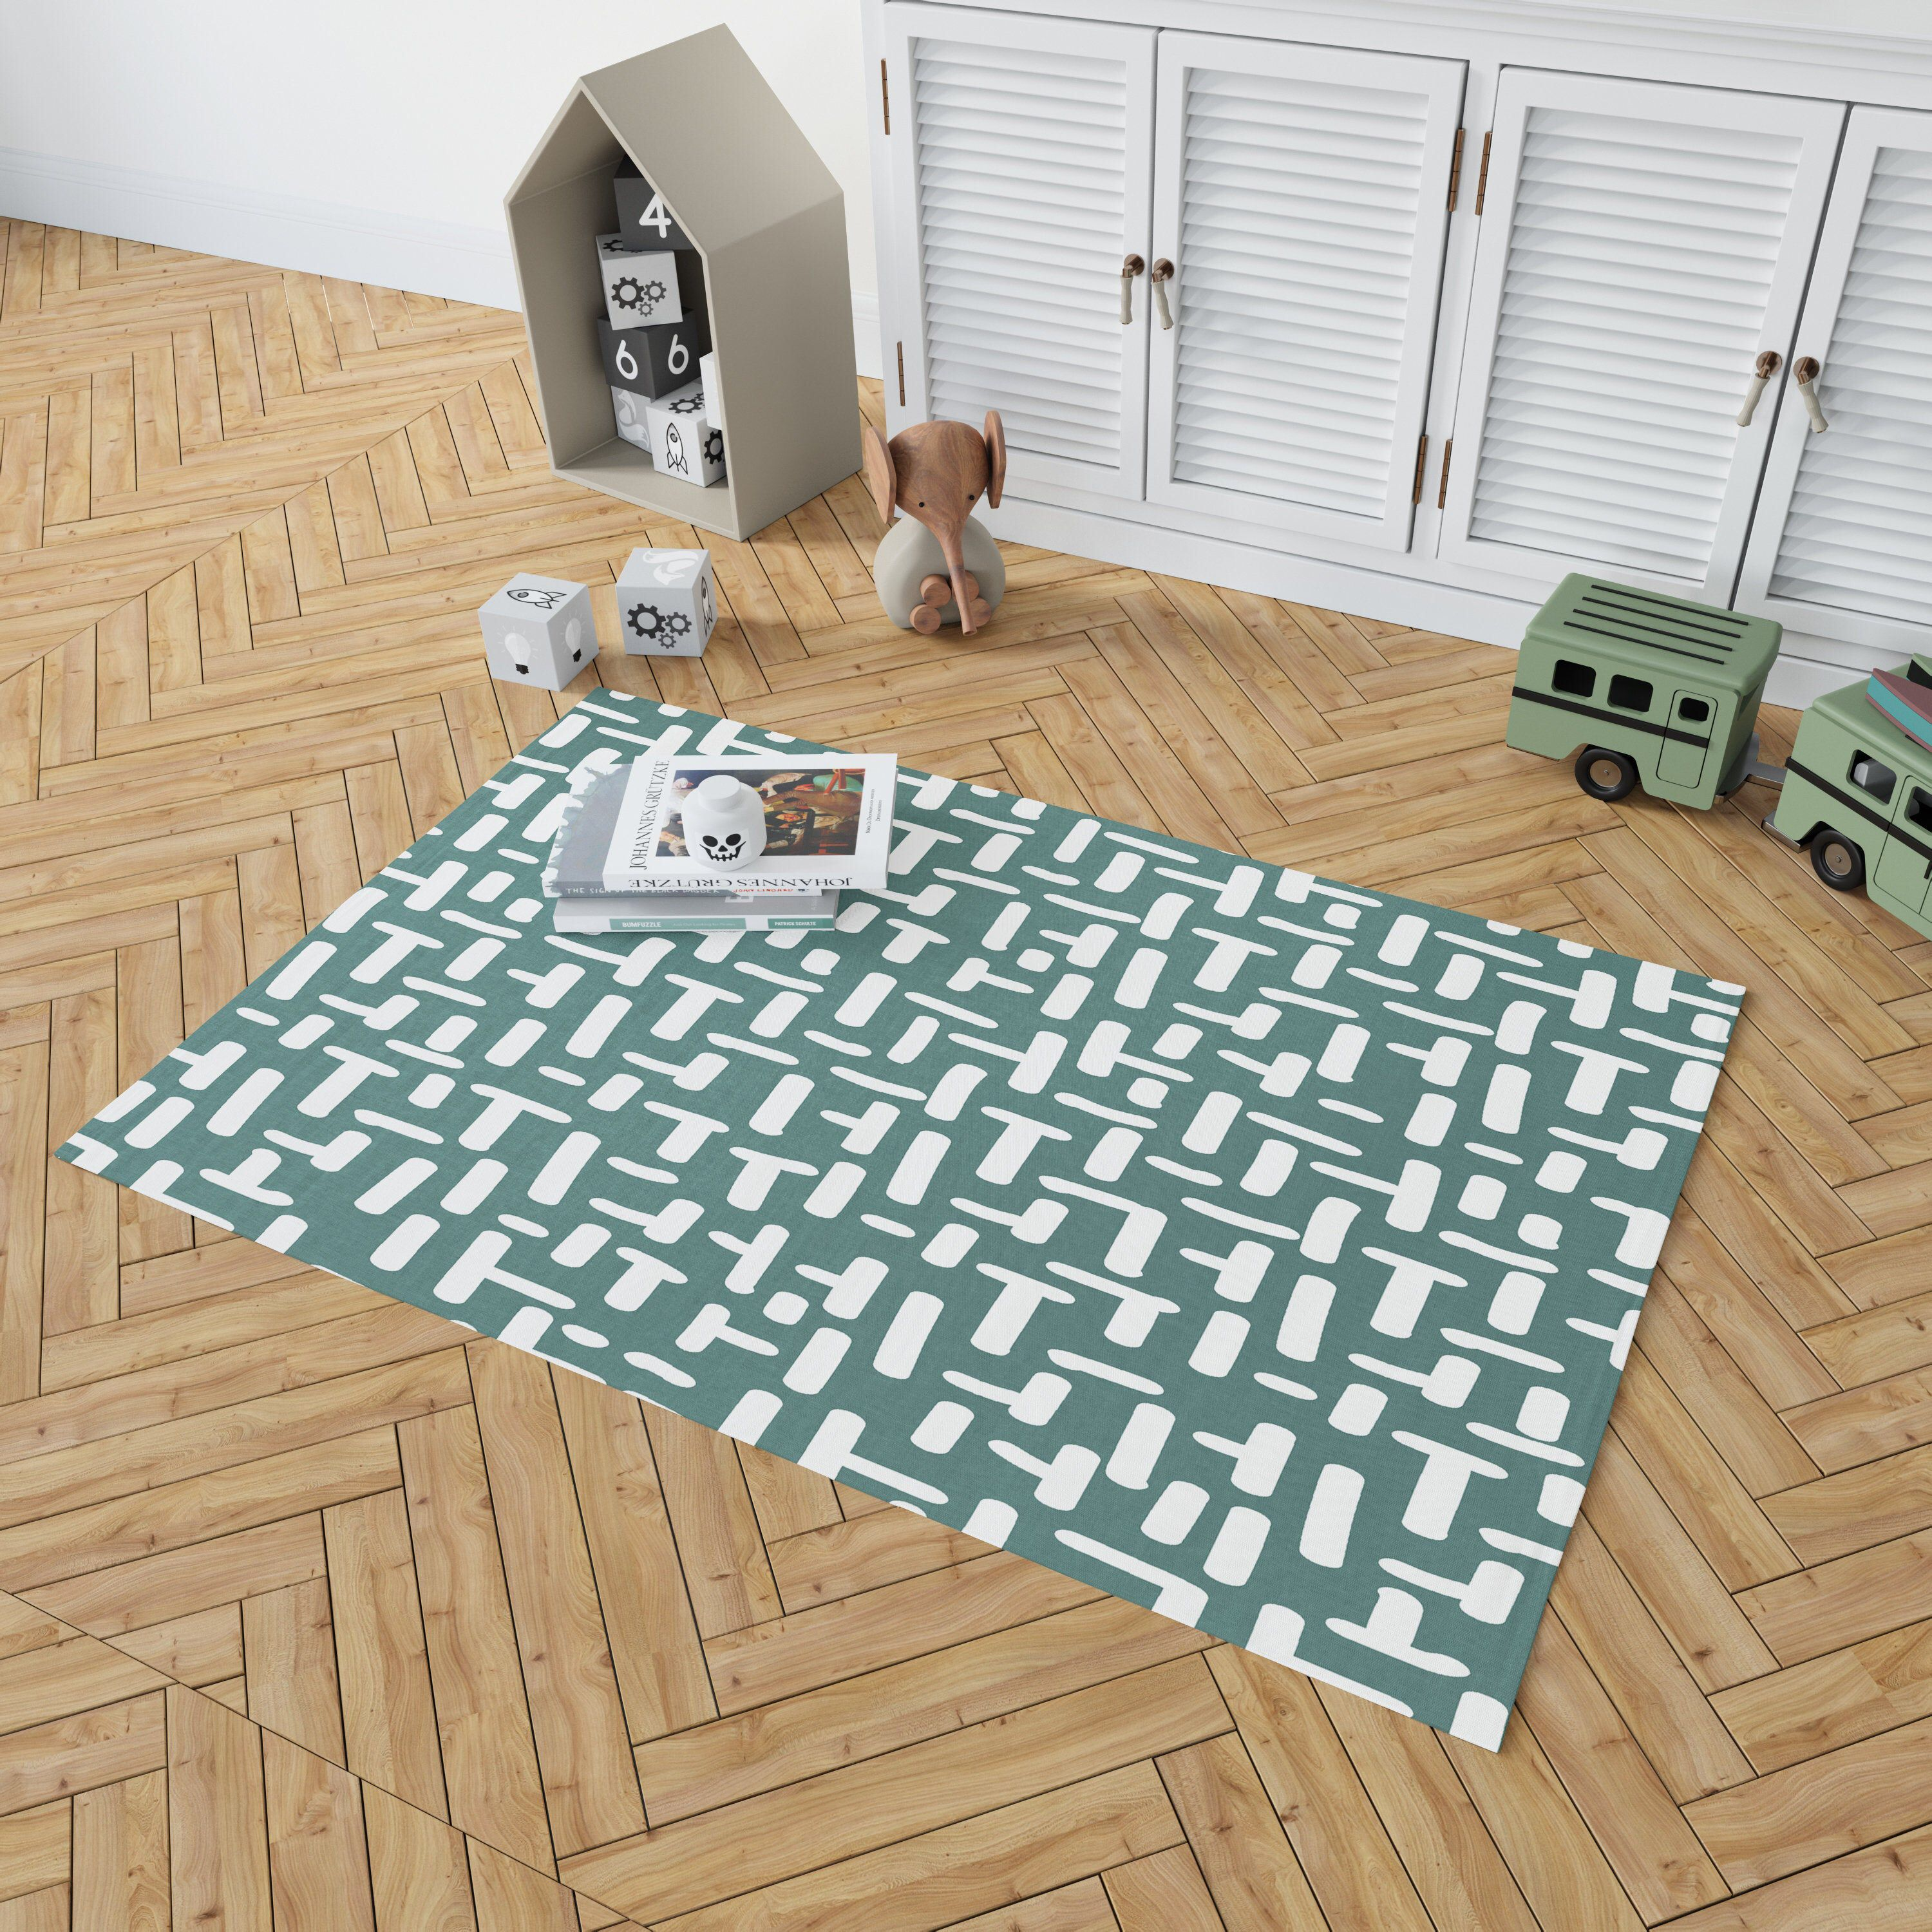 Pin On Accent And Area Rugs